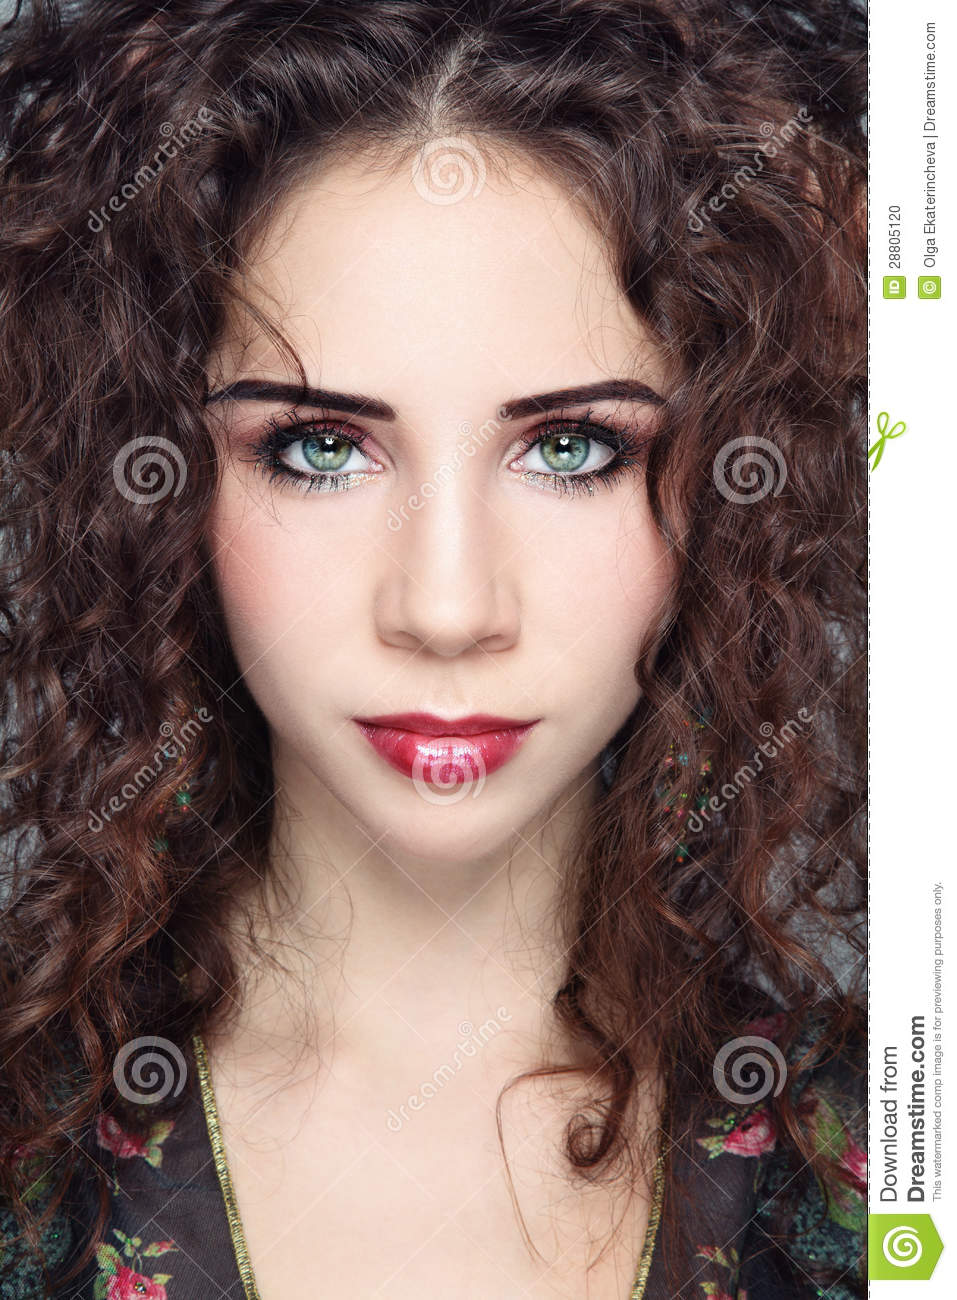 Girl With Curly Hair Stock Photo Image Of Make Model 28805120